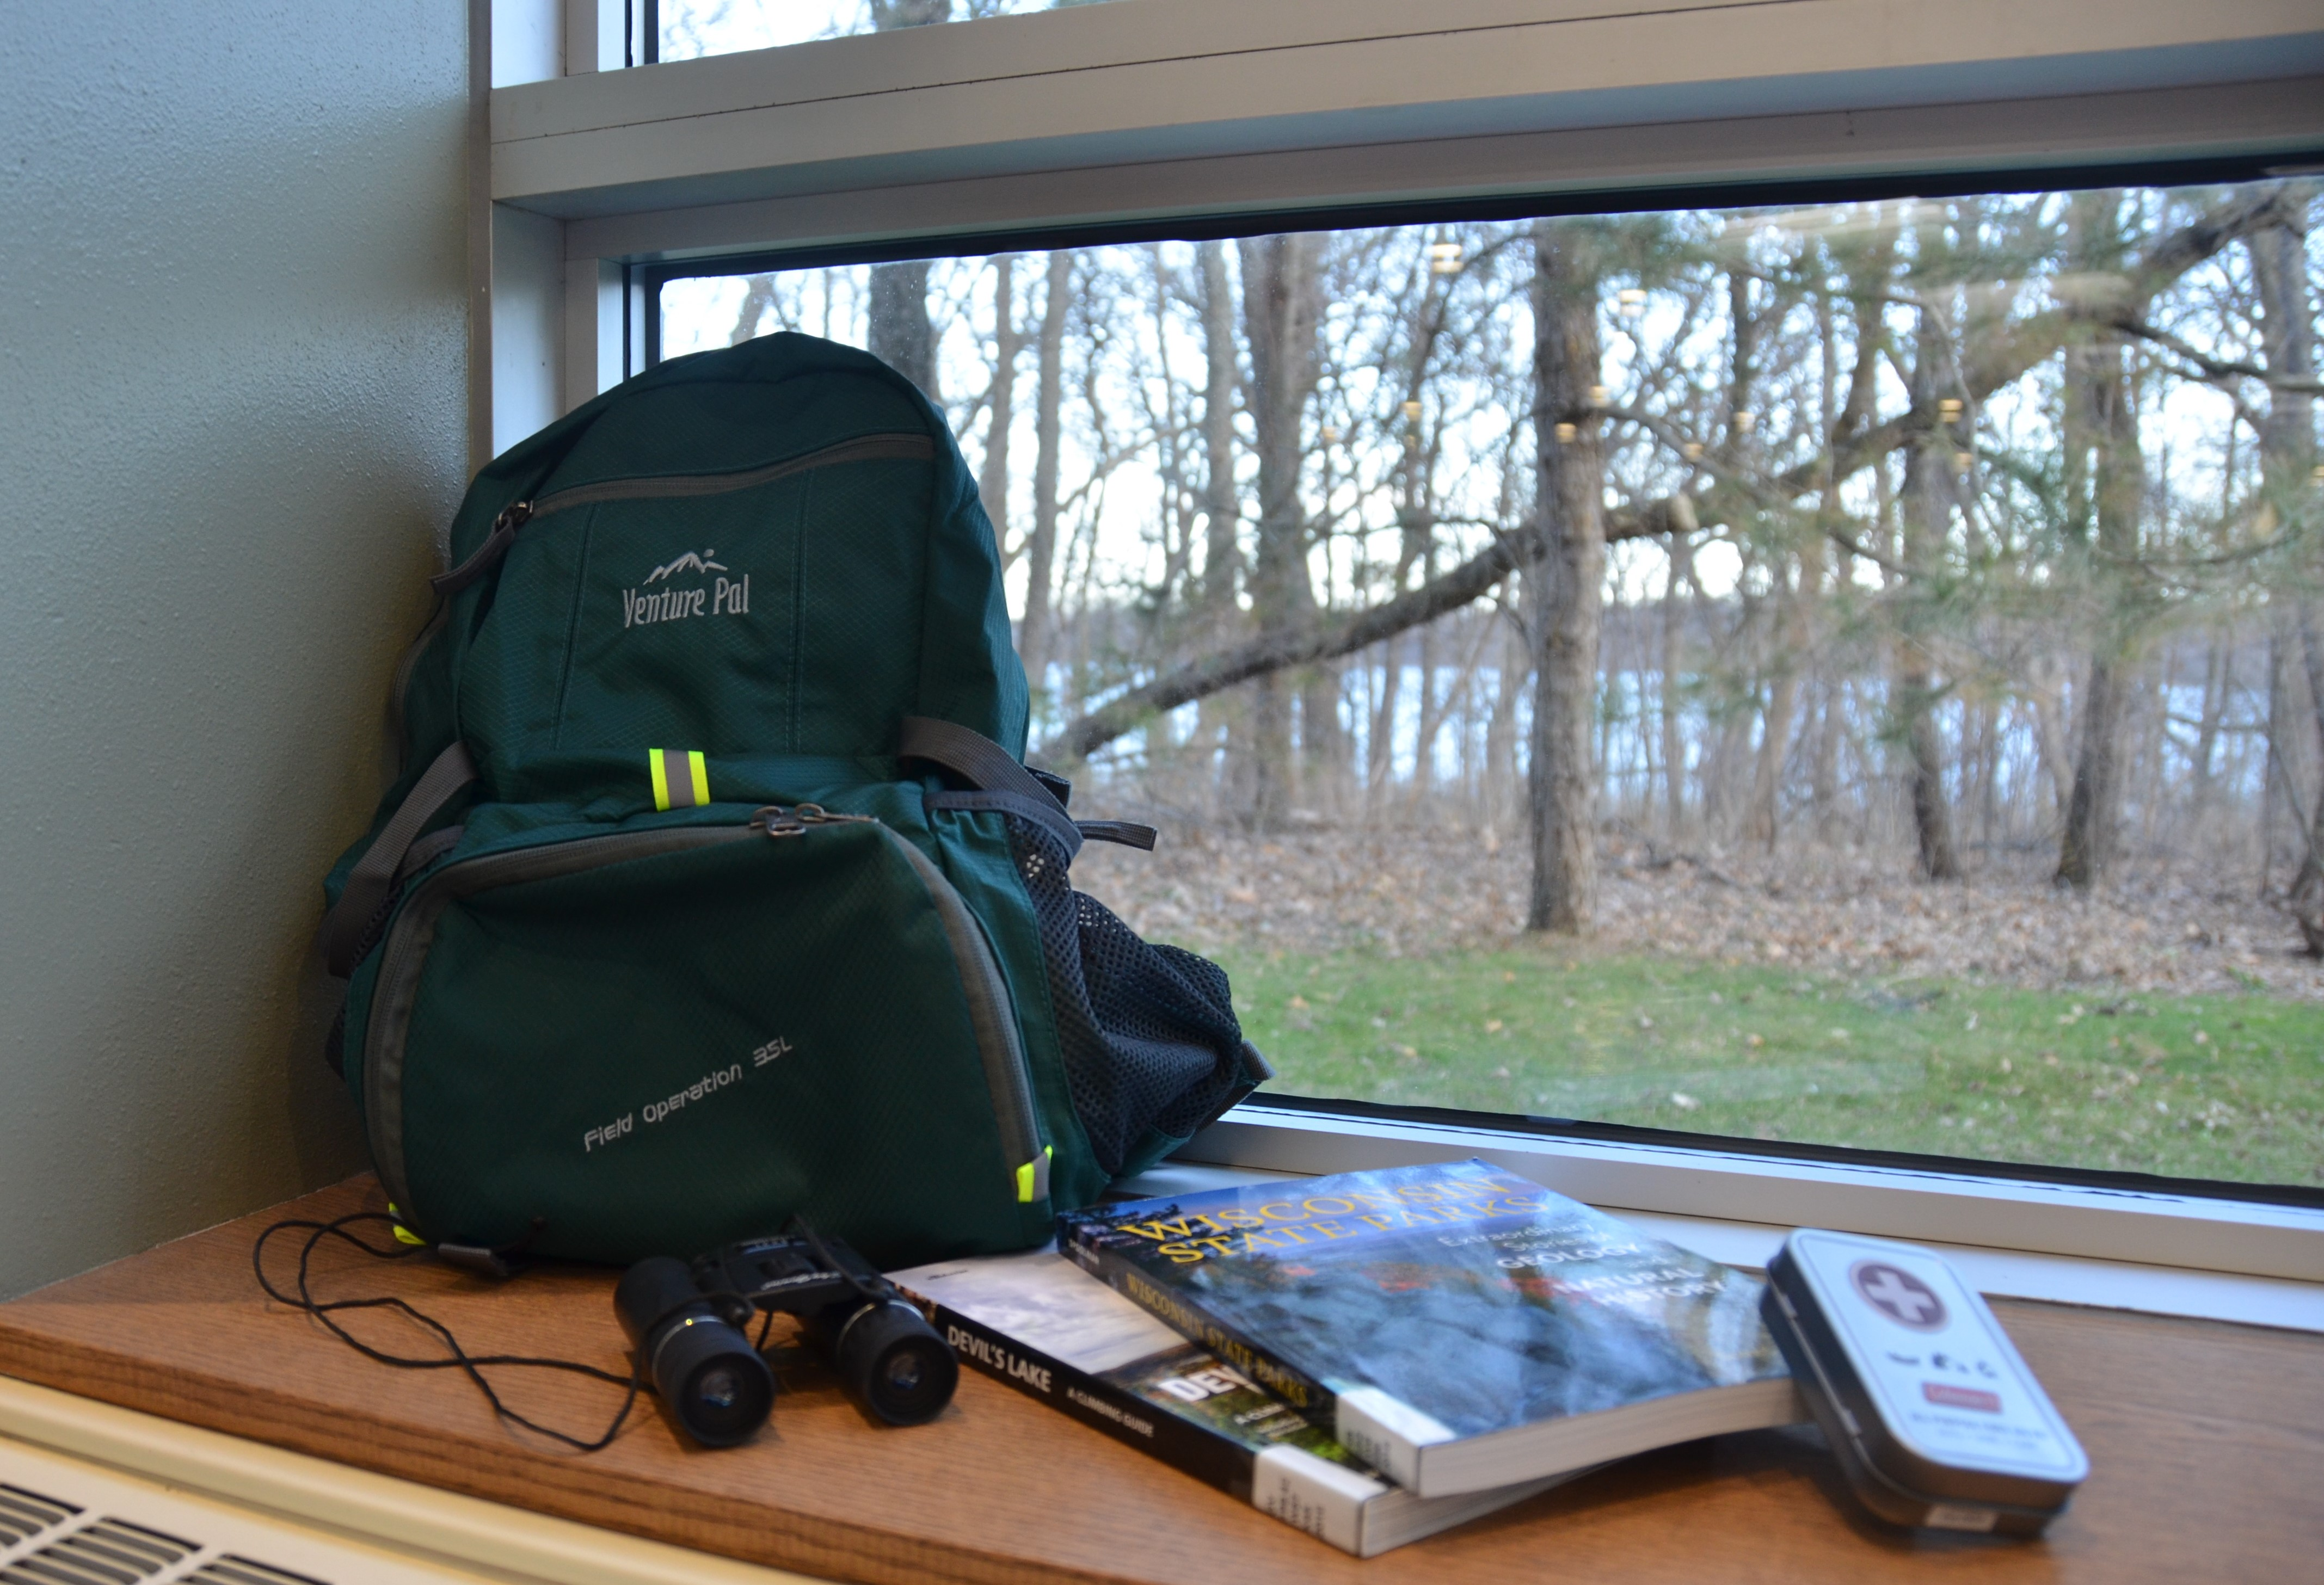 Photo of Devil's Lake State Park Backpack which contains two books about Devil's Lake, binoculars, and a first aid kit.